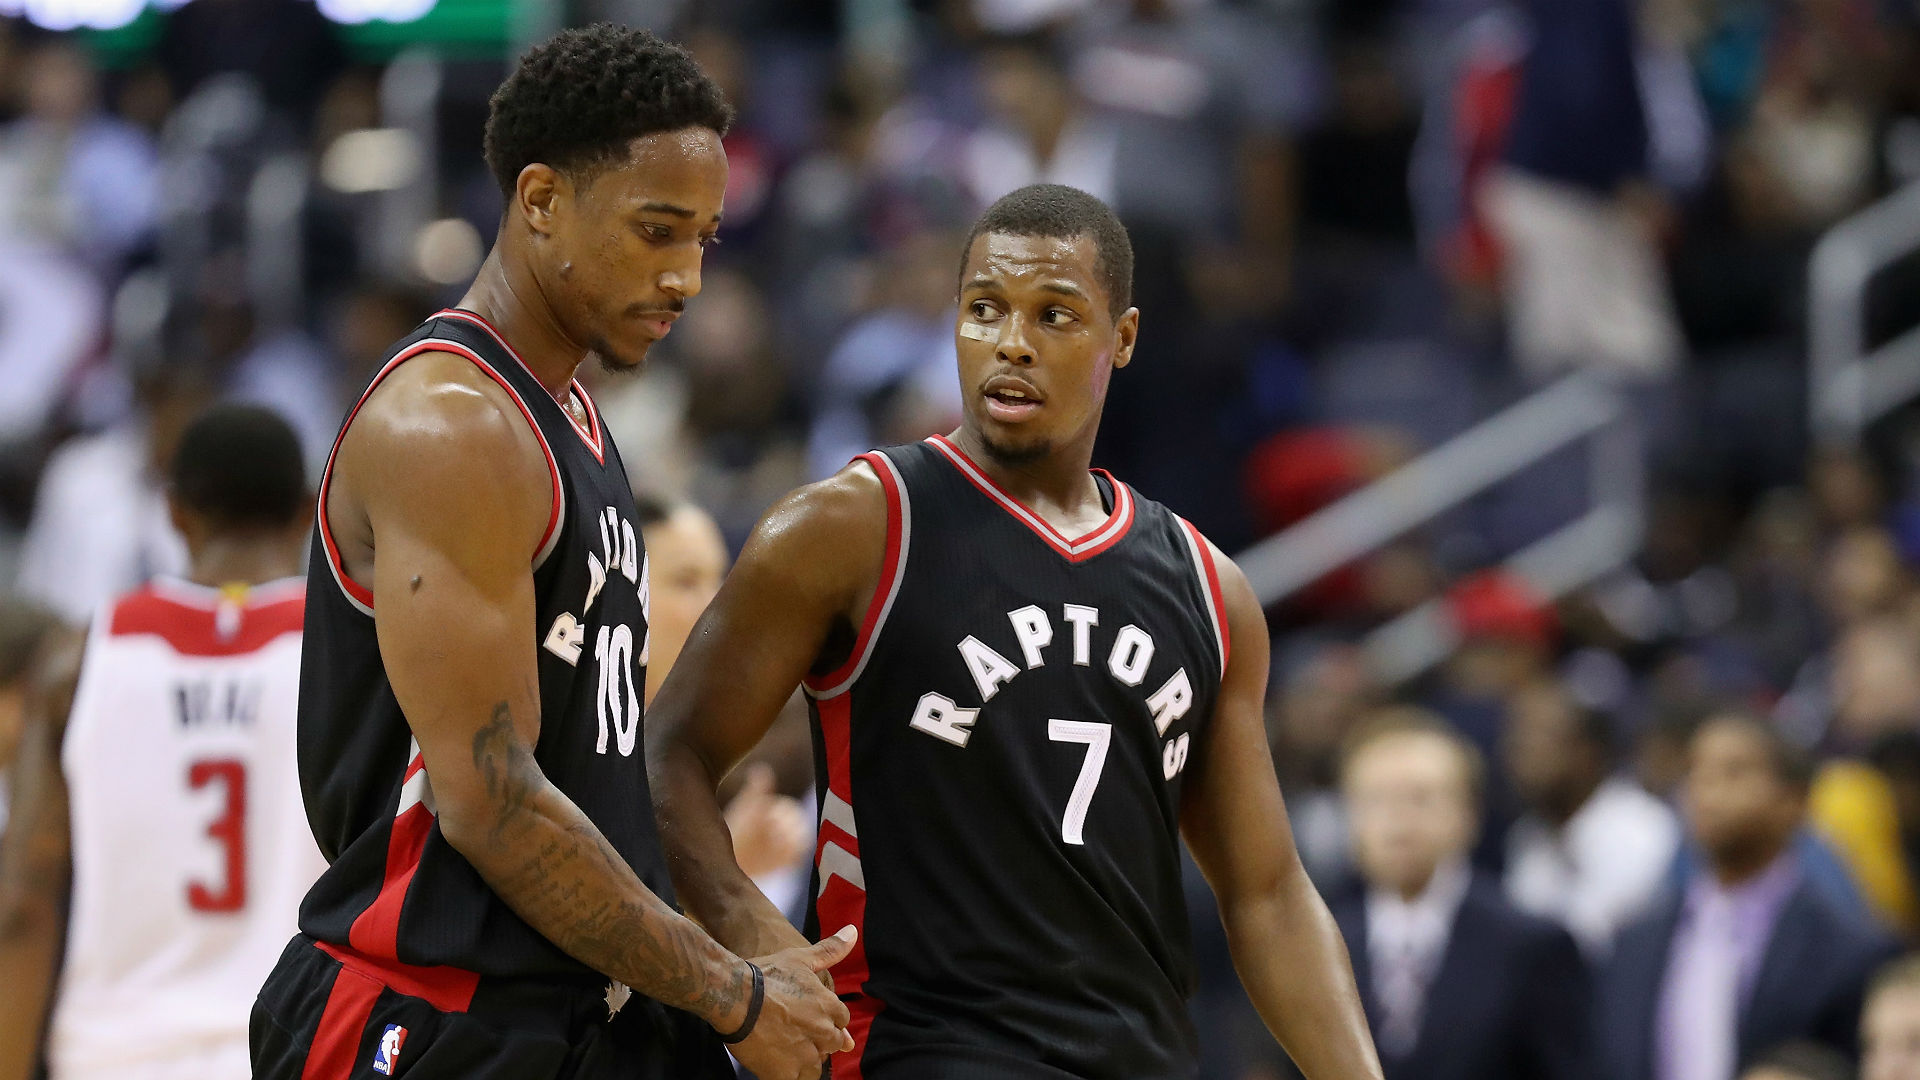 National Basketball Association  disciplines four after feisty night between Raptors, Heat